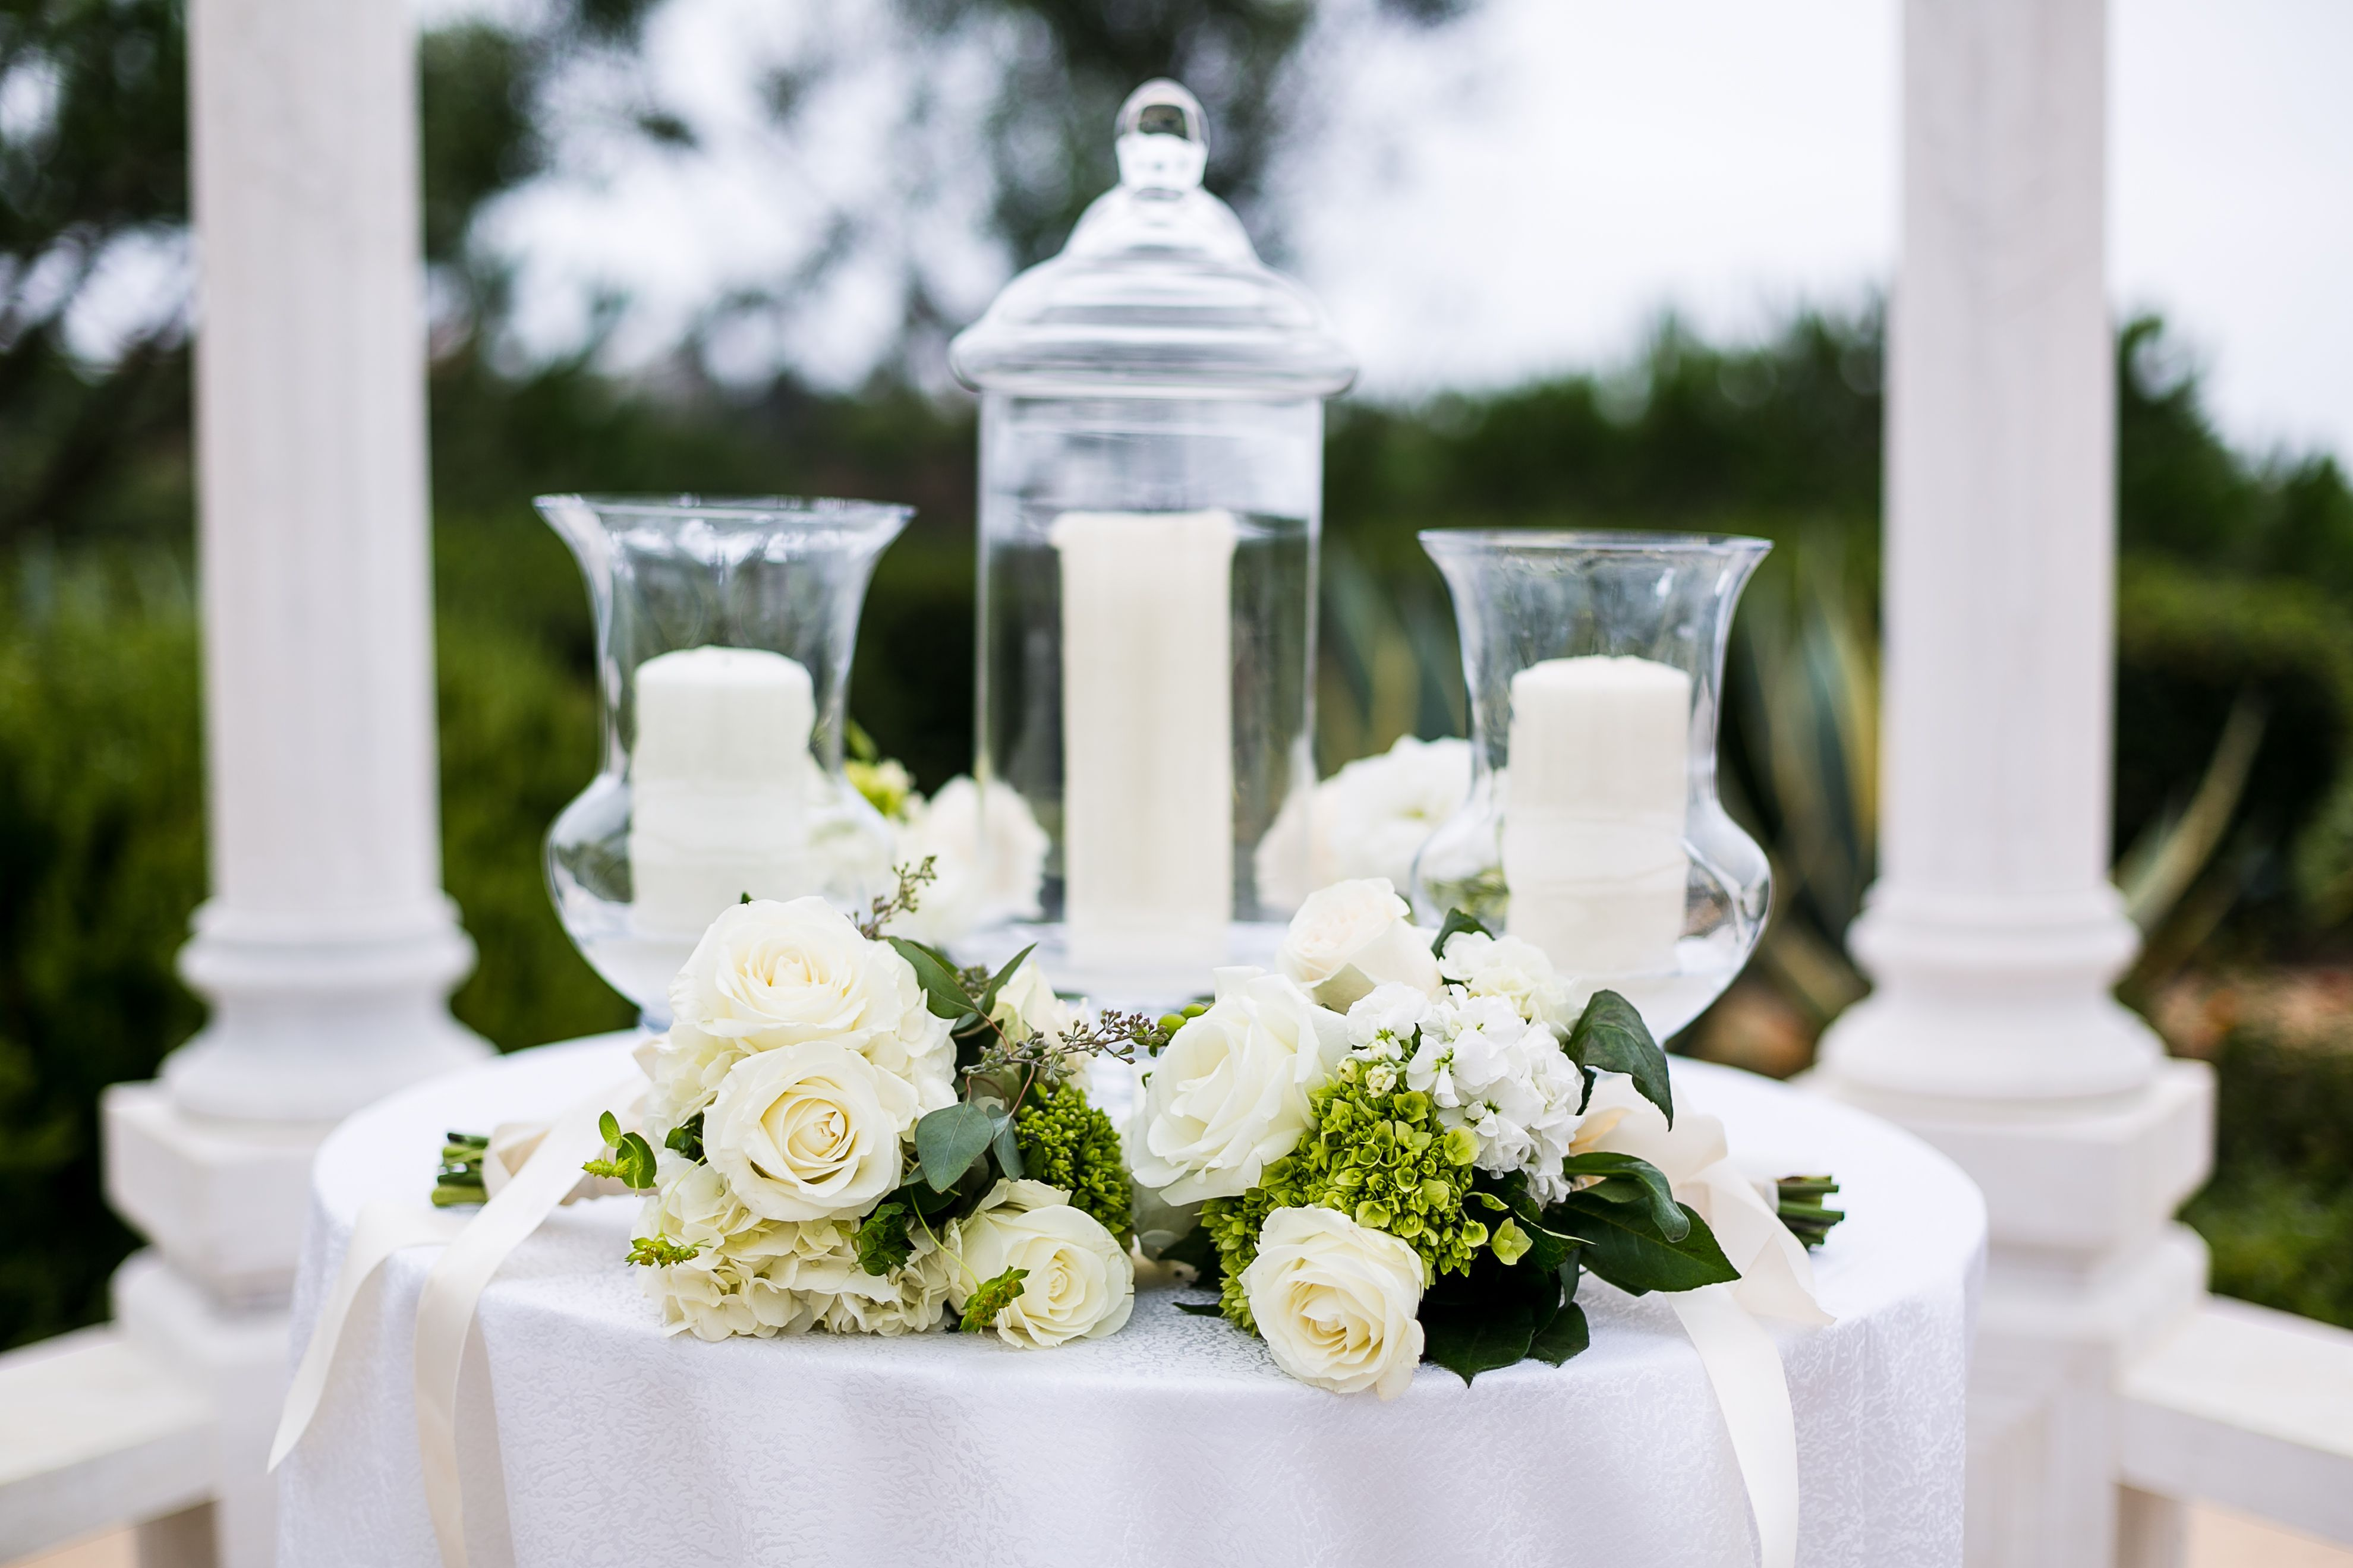 Pin By Agape Planning On Ceremony Decor Unity Candle Ceremony Wedding Unity Candle Table Wedding Unity Candles